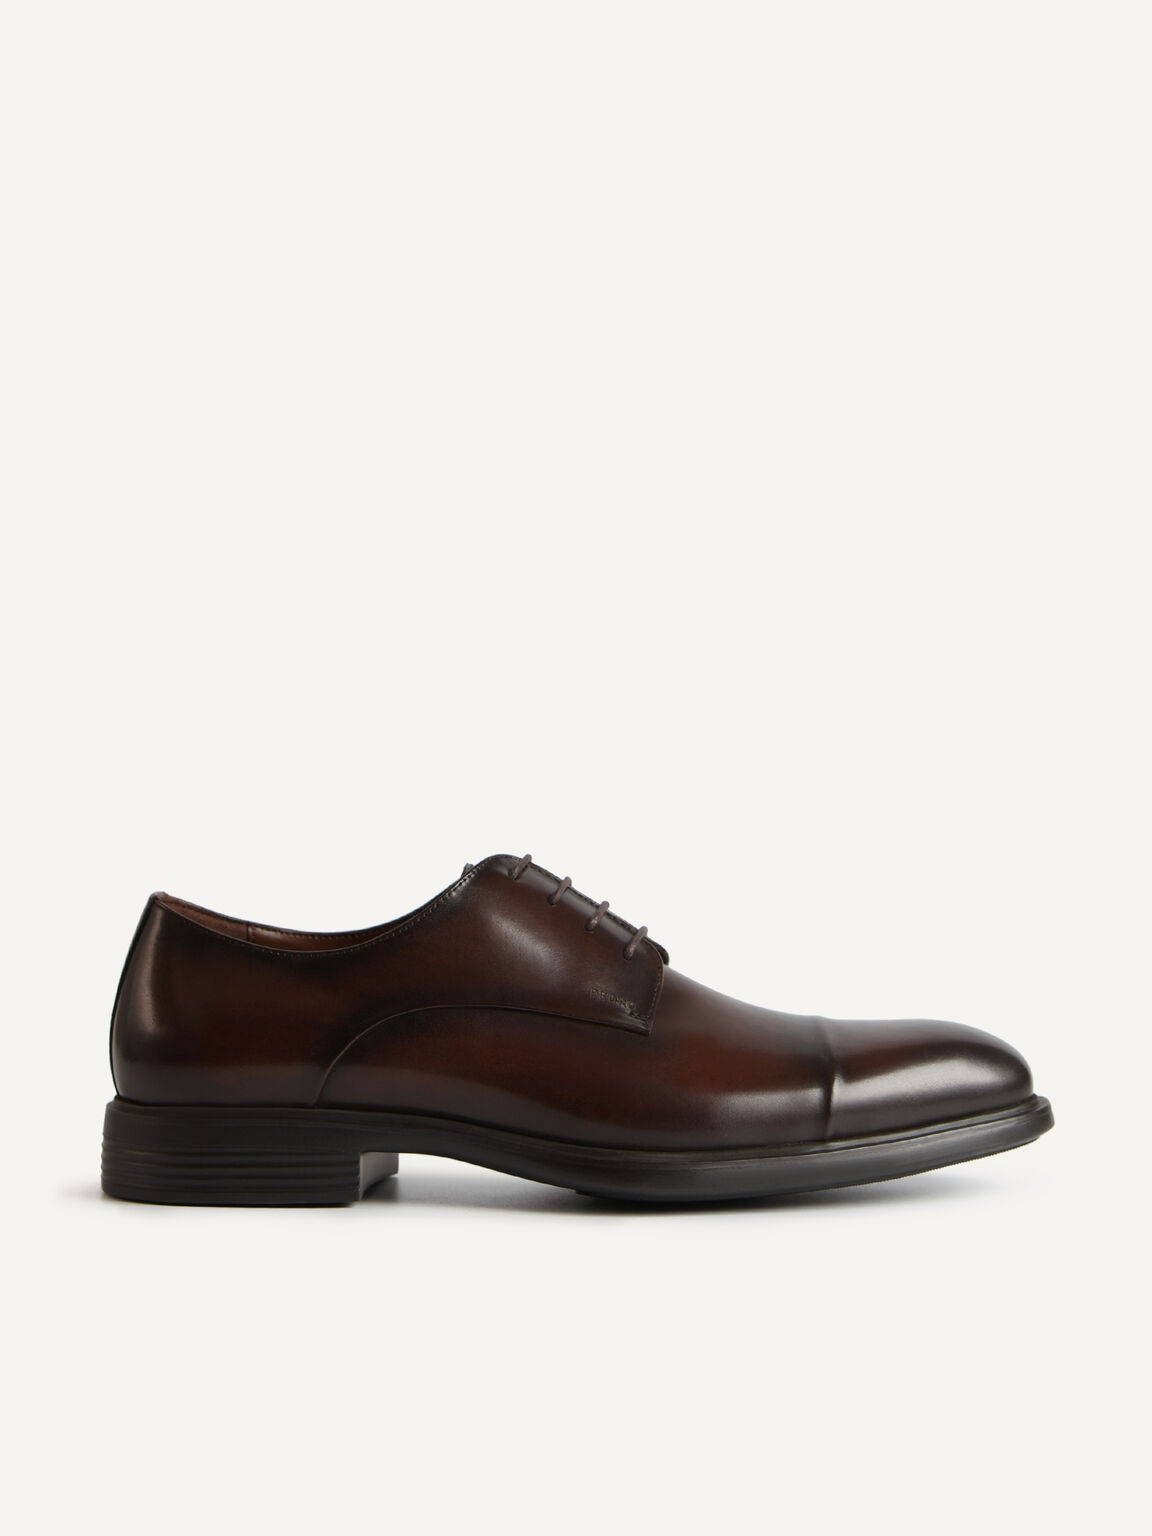 Altitude Leather Toe Derby Shoes, Brown, hi-res